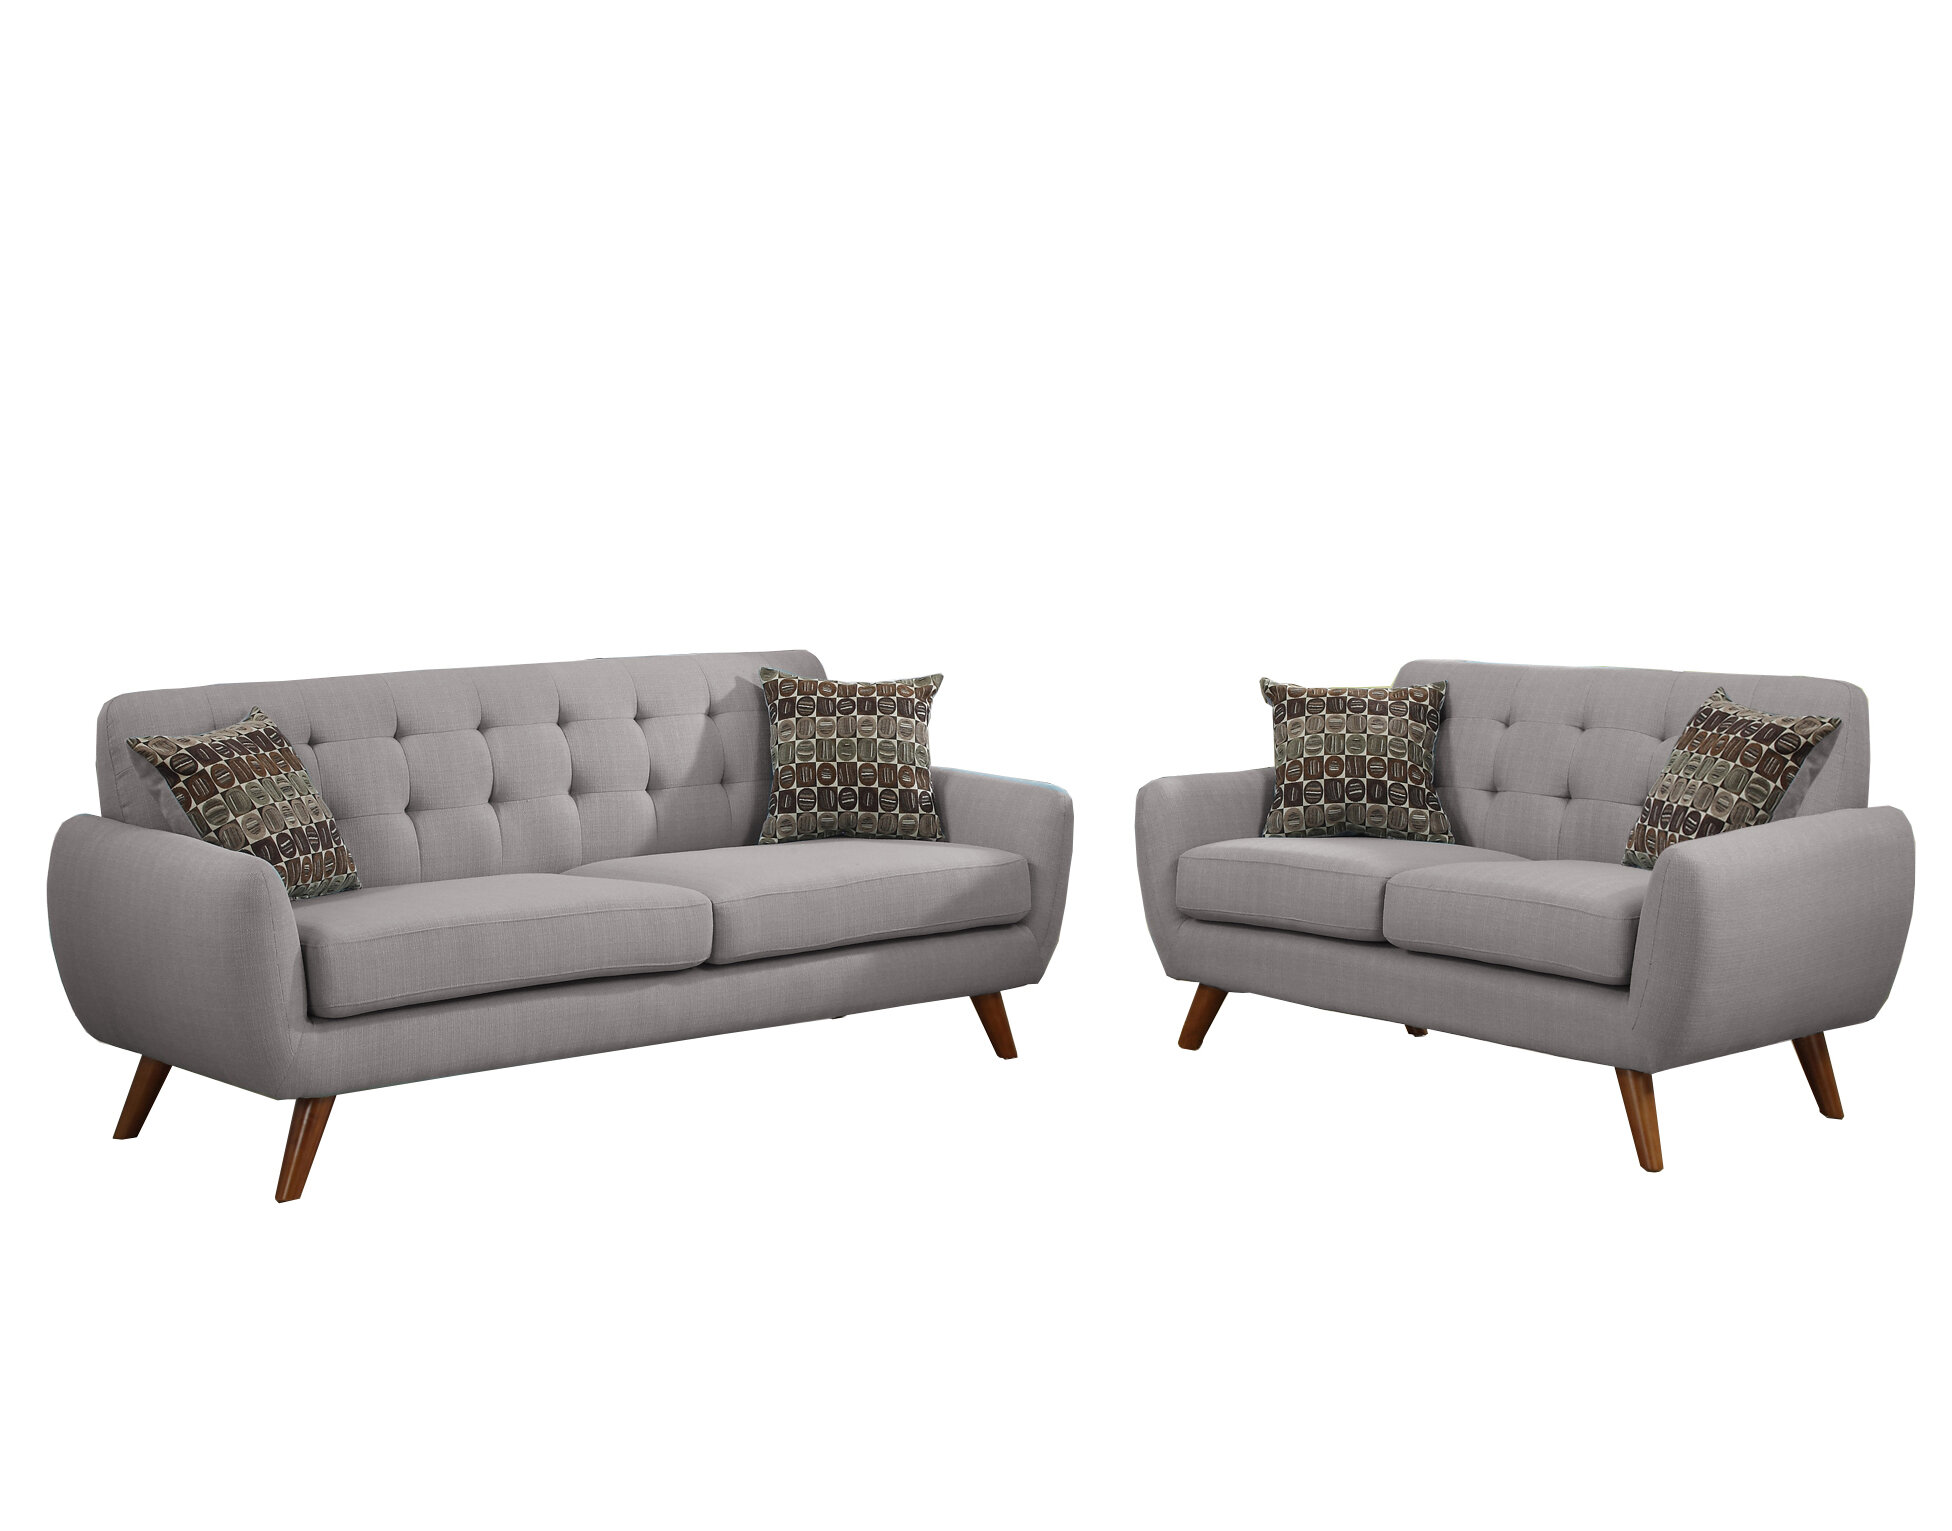 Langley Street Wooten 2 Piece Living Room Set & Reviews | Wayfair